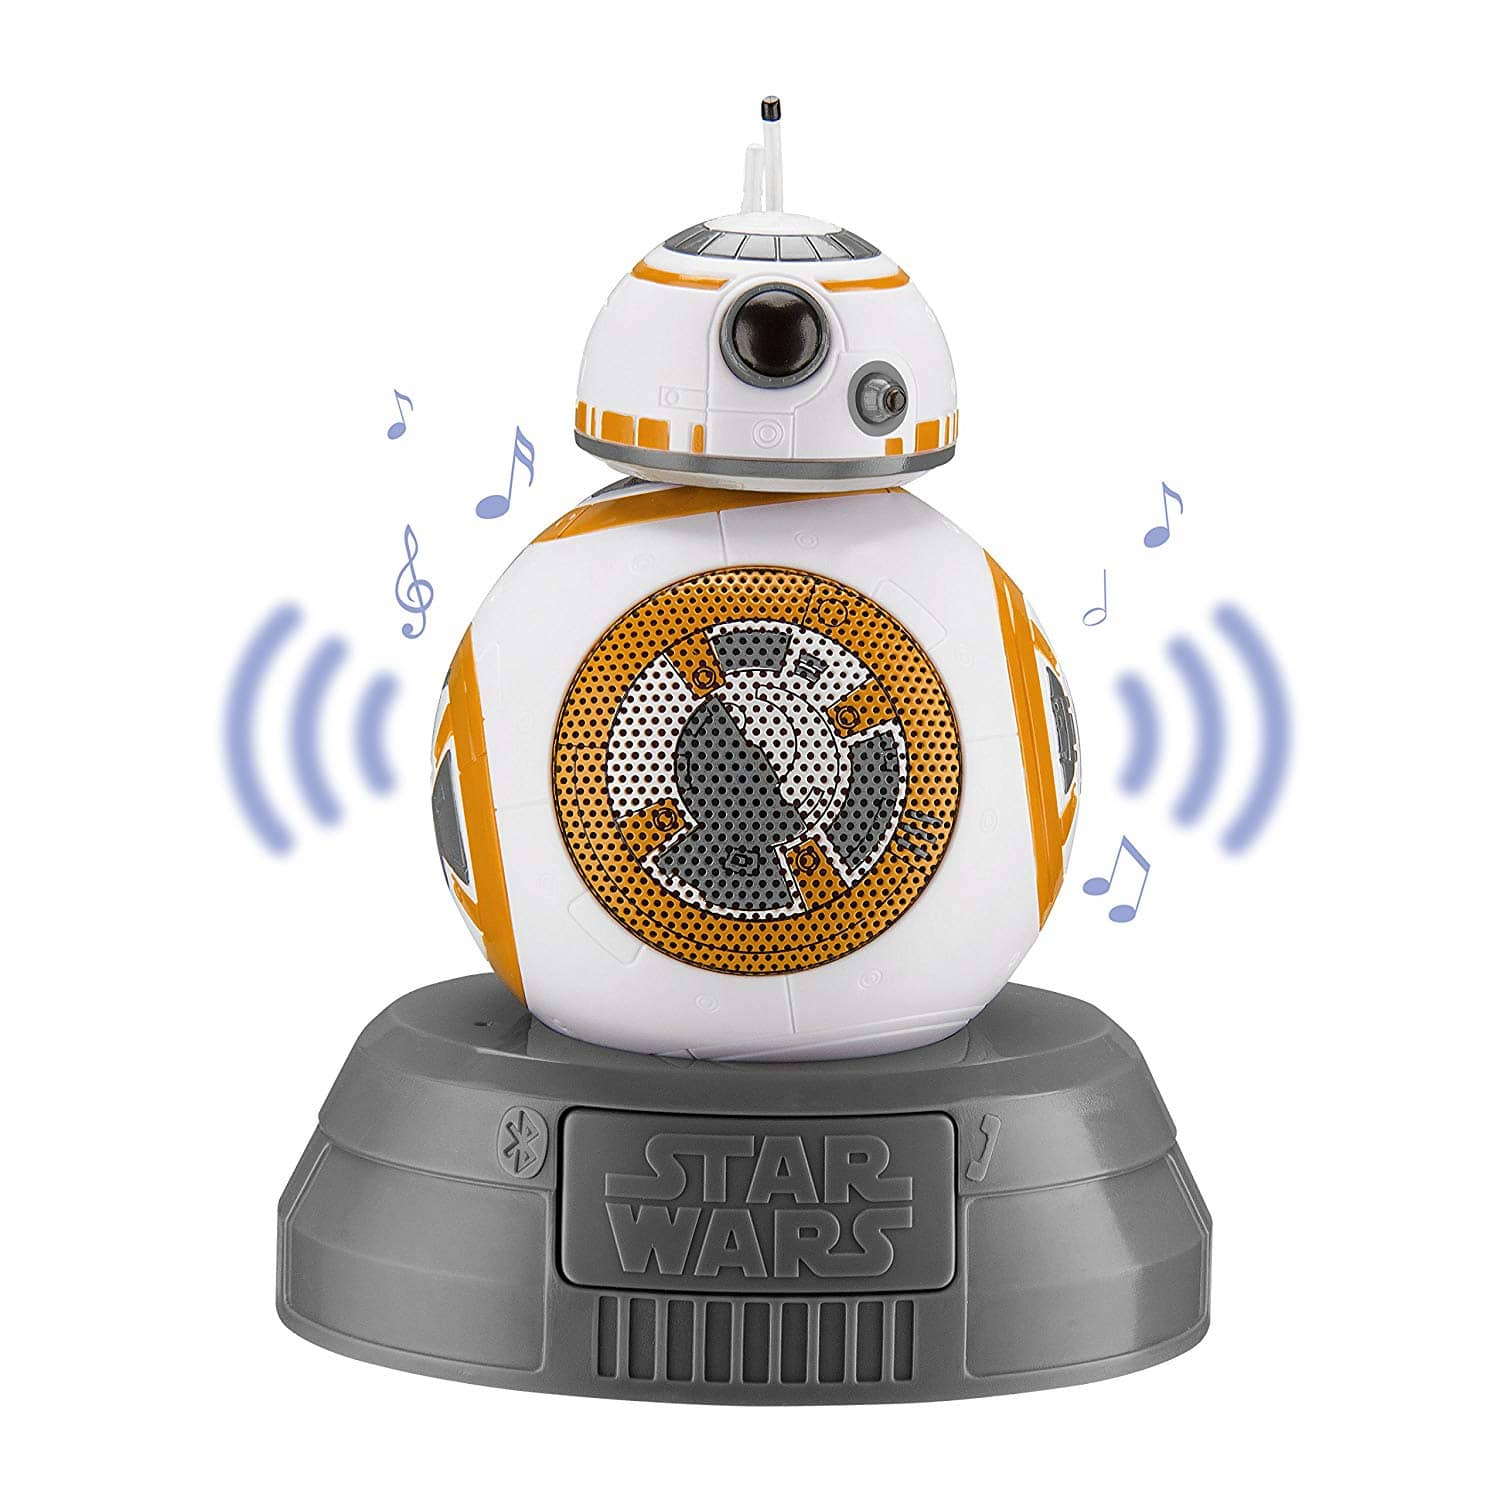 Star Wars BB-8 Bluetooth Speaker by iHome $15.99, Darth Vader or Chewbacca $19.99 at Kohls. Free Ship for Card Holders